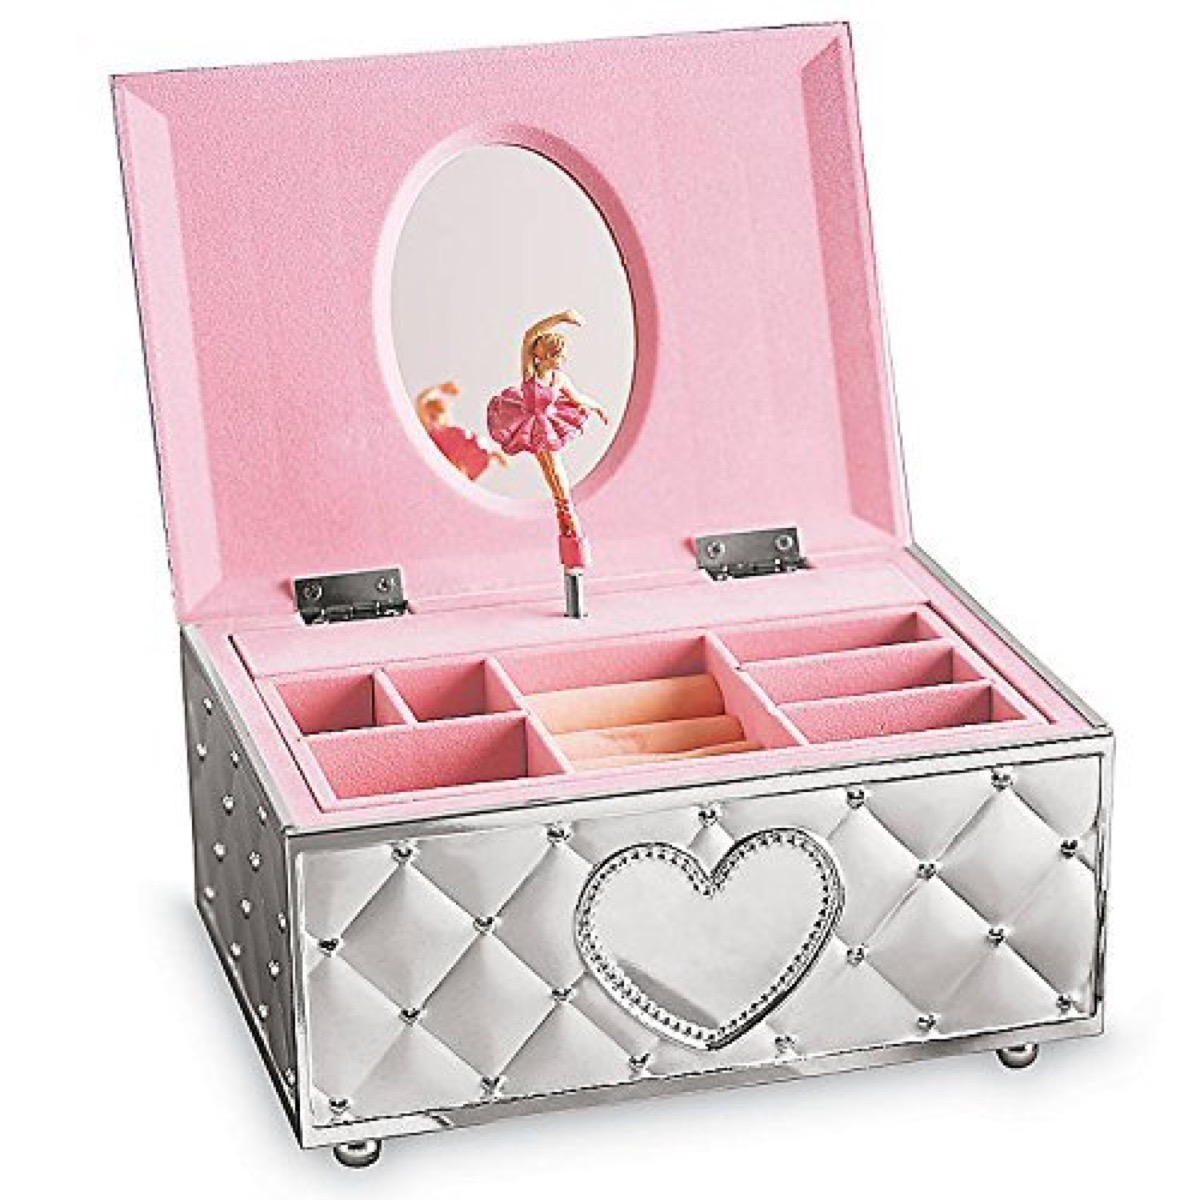 pink jewelry box with silver exterior and ballerina figurine inside